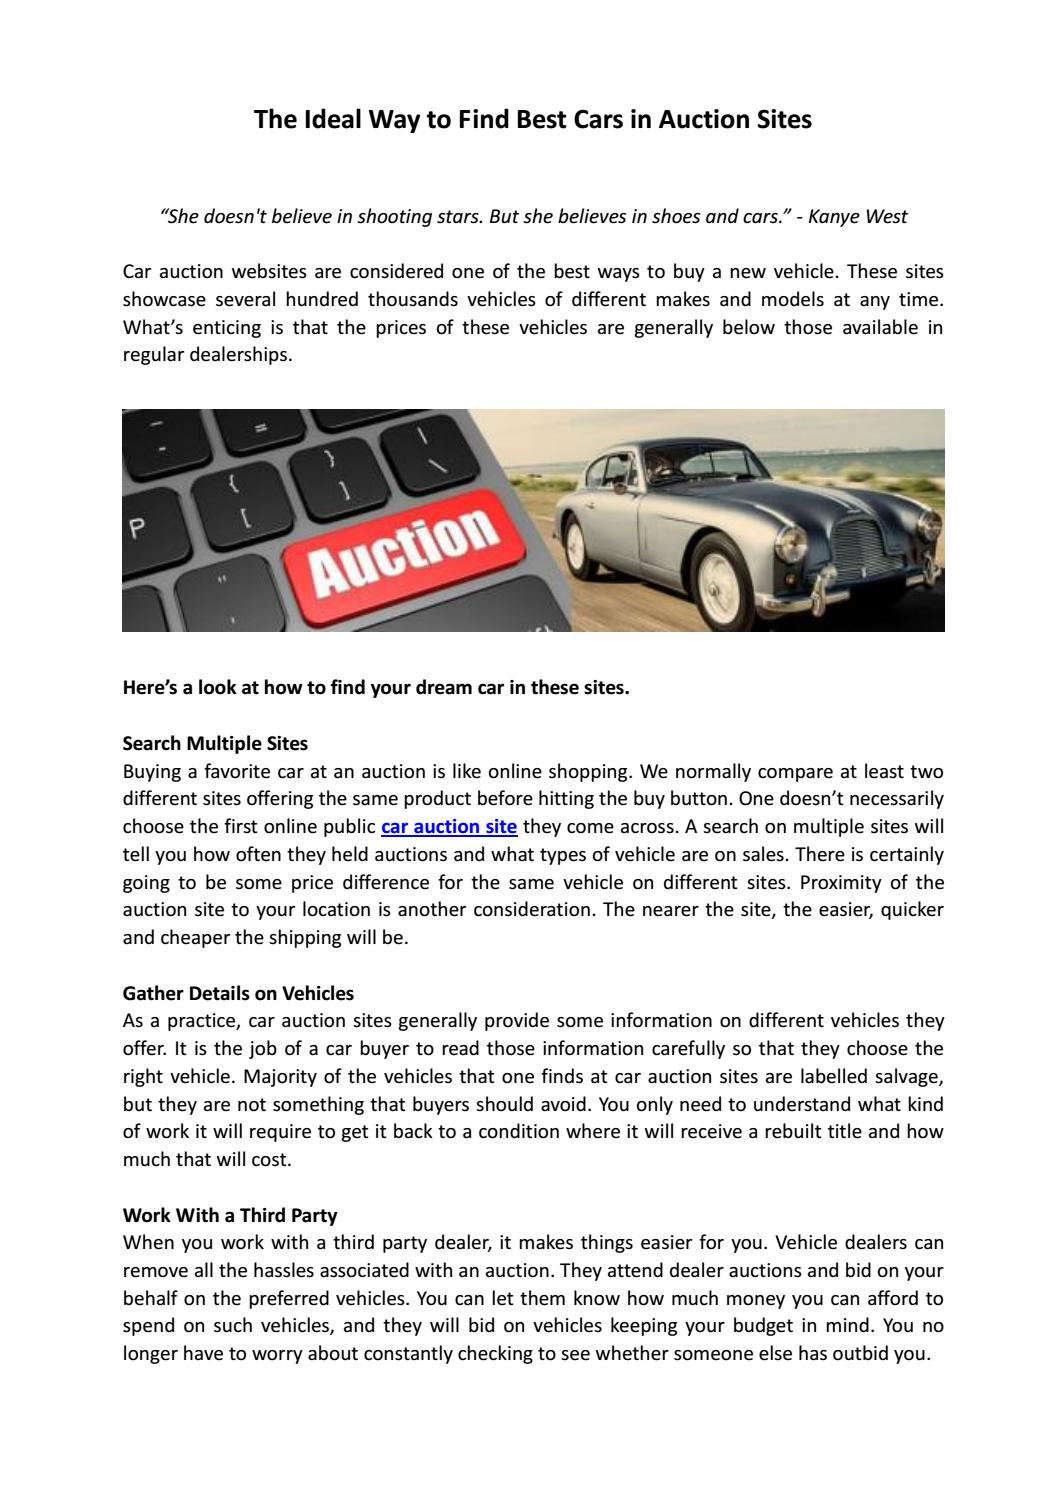 How To Buy Cars At Auction >> The Ideal Way To Find Best Cars In Auction Sites By Denis